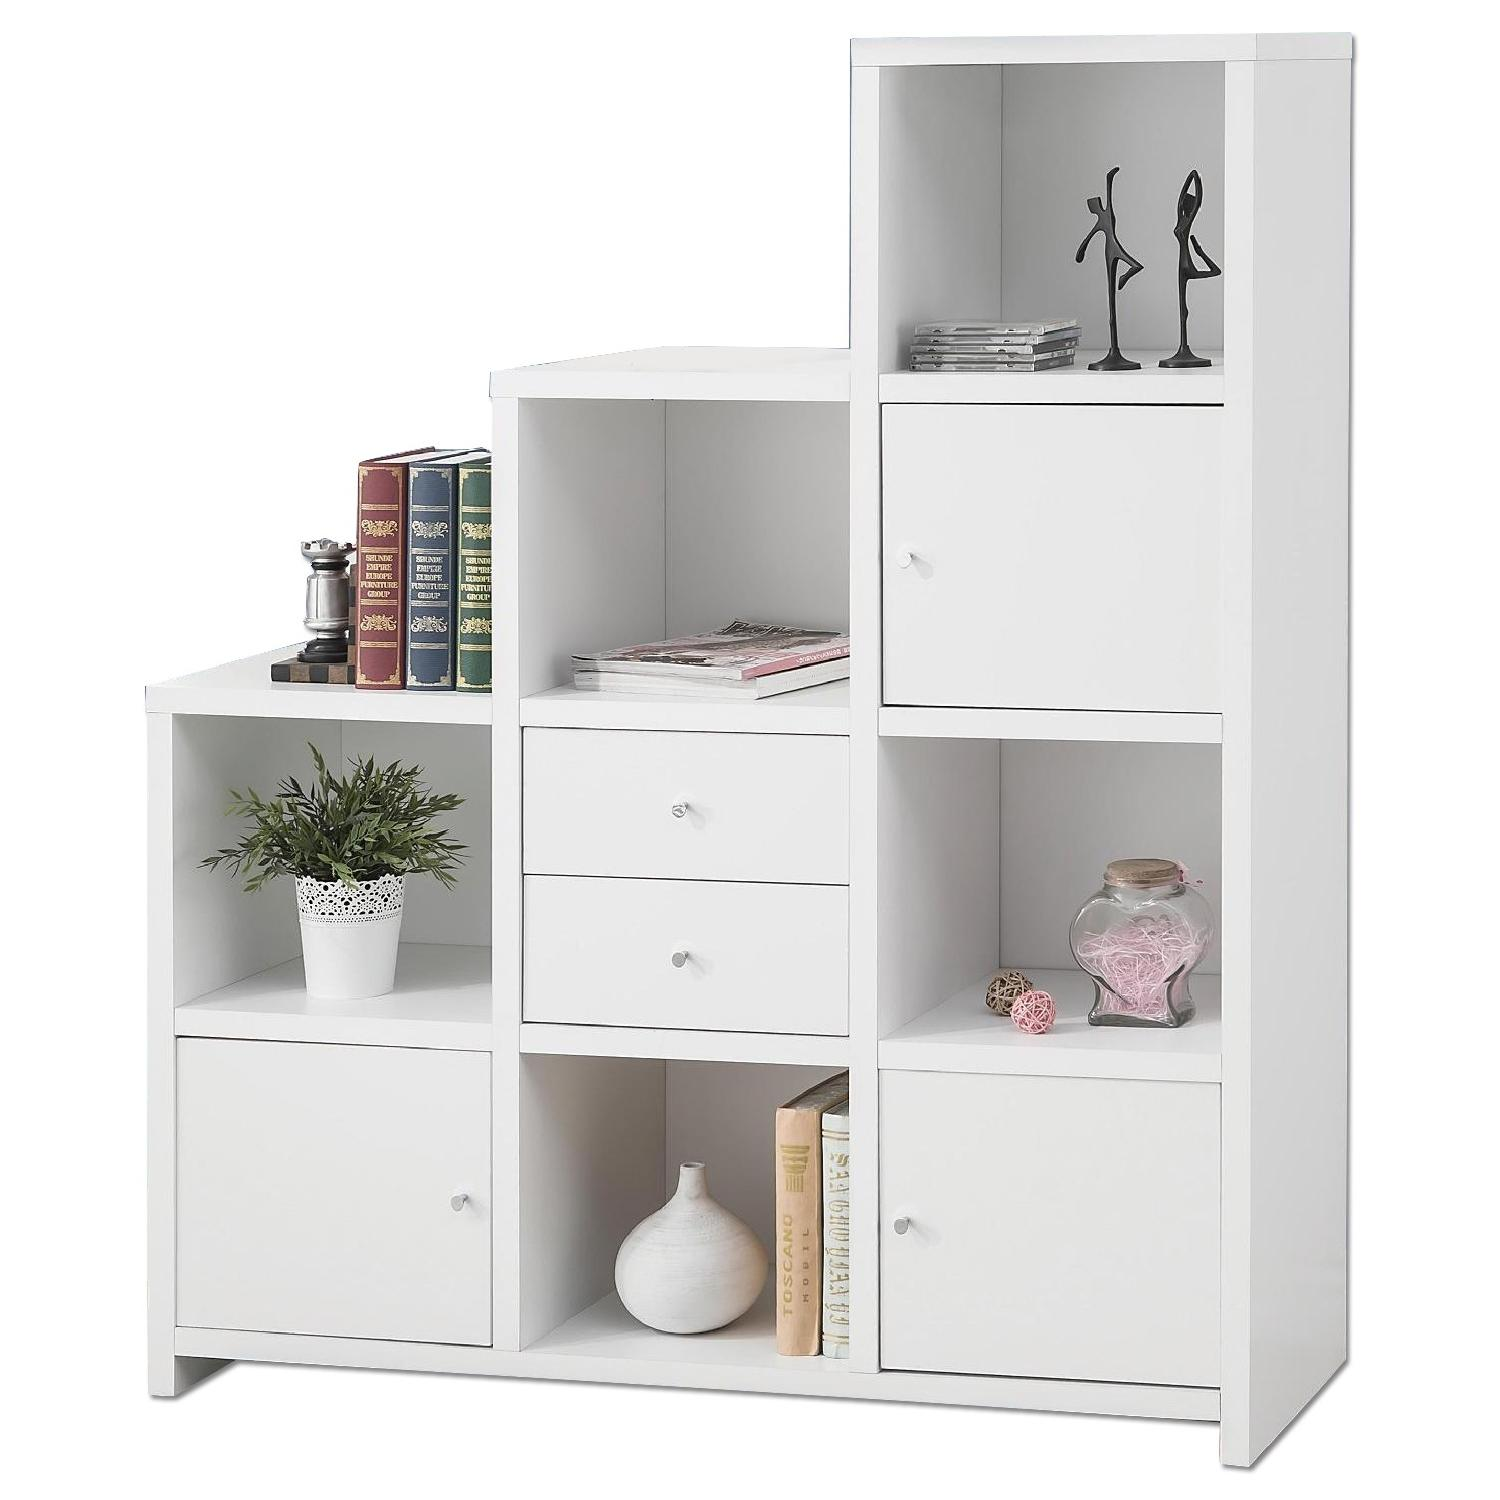 Reversible Asymmetric Shelf Cabinet in White Finish - image-0